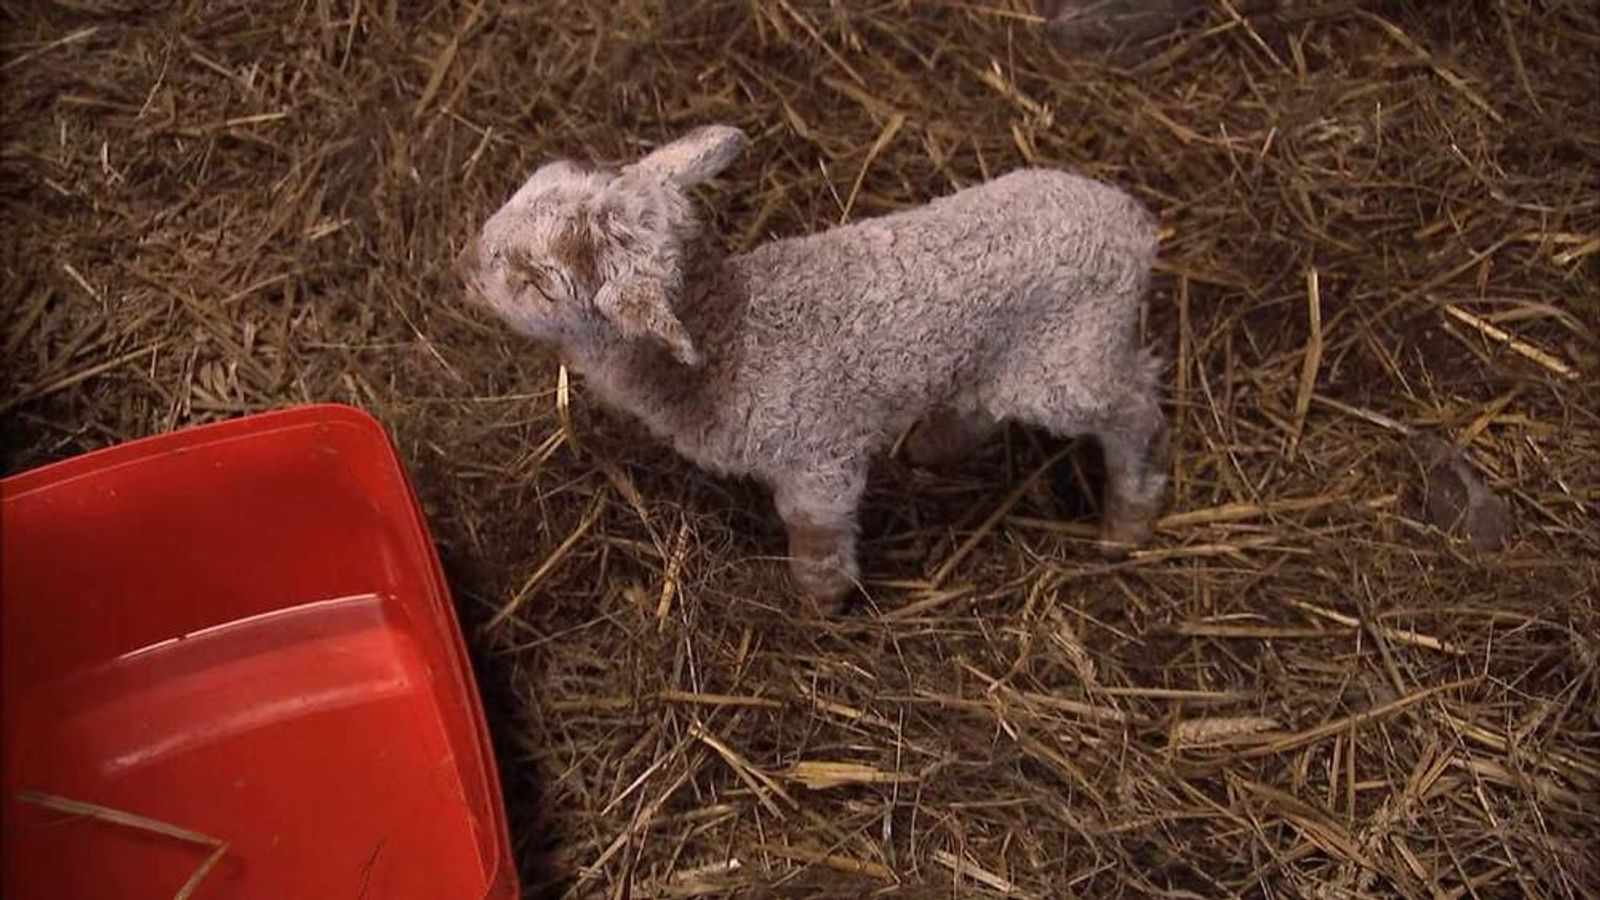 Lamb born while buried in a snow drift